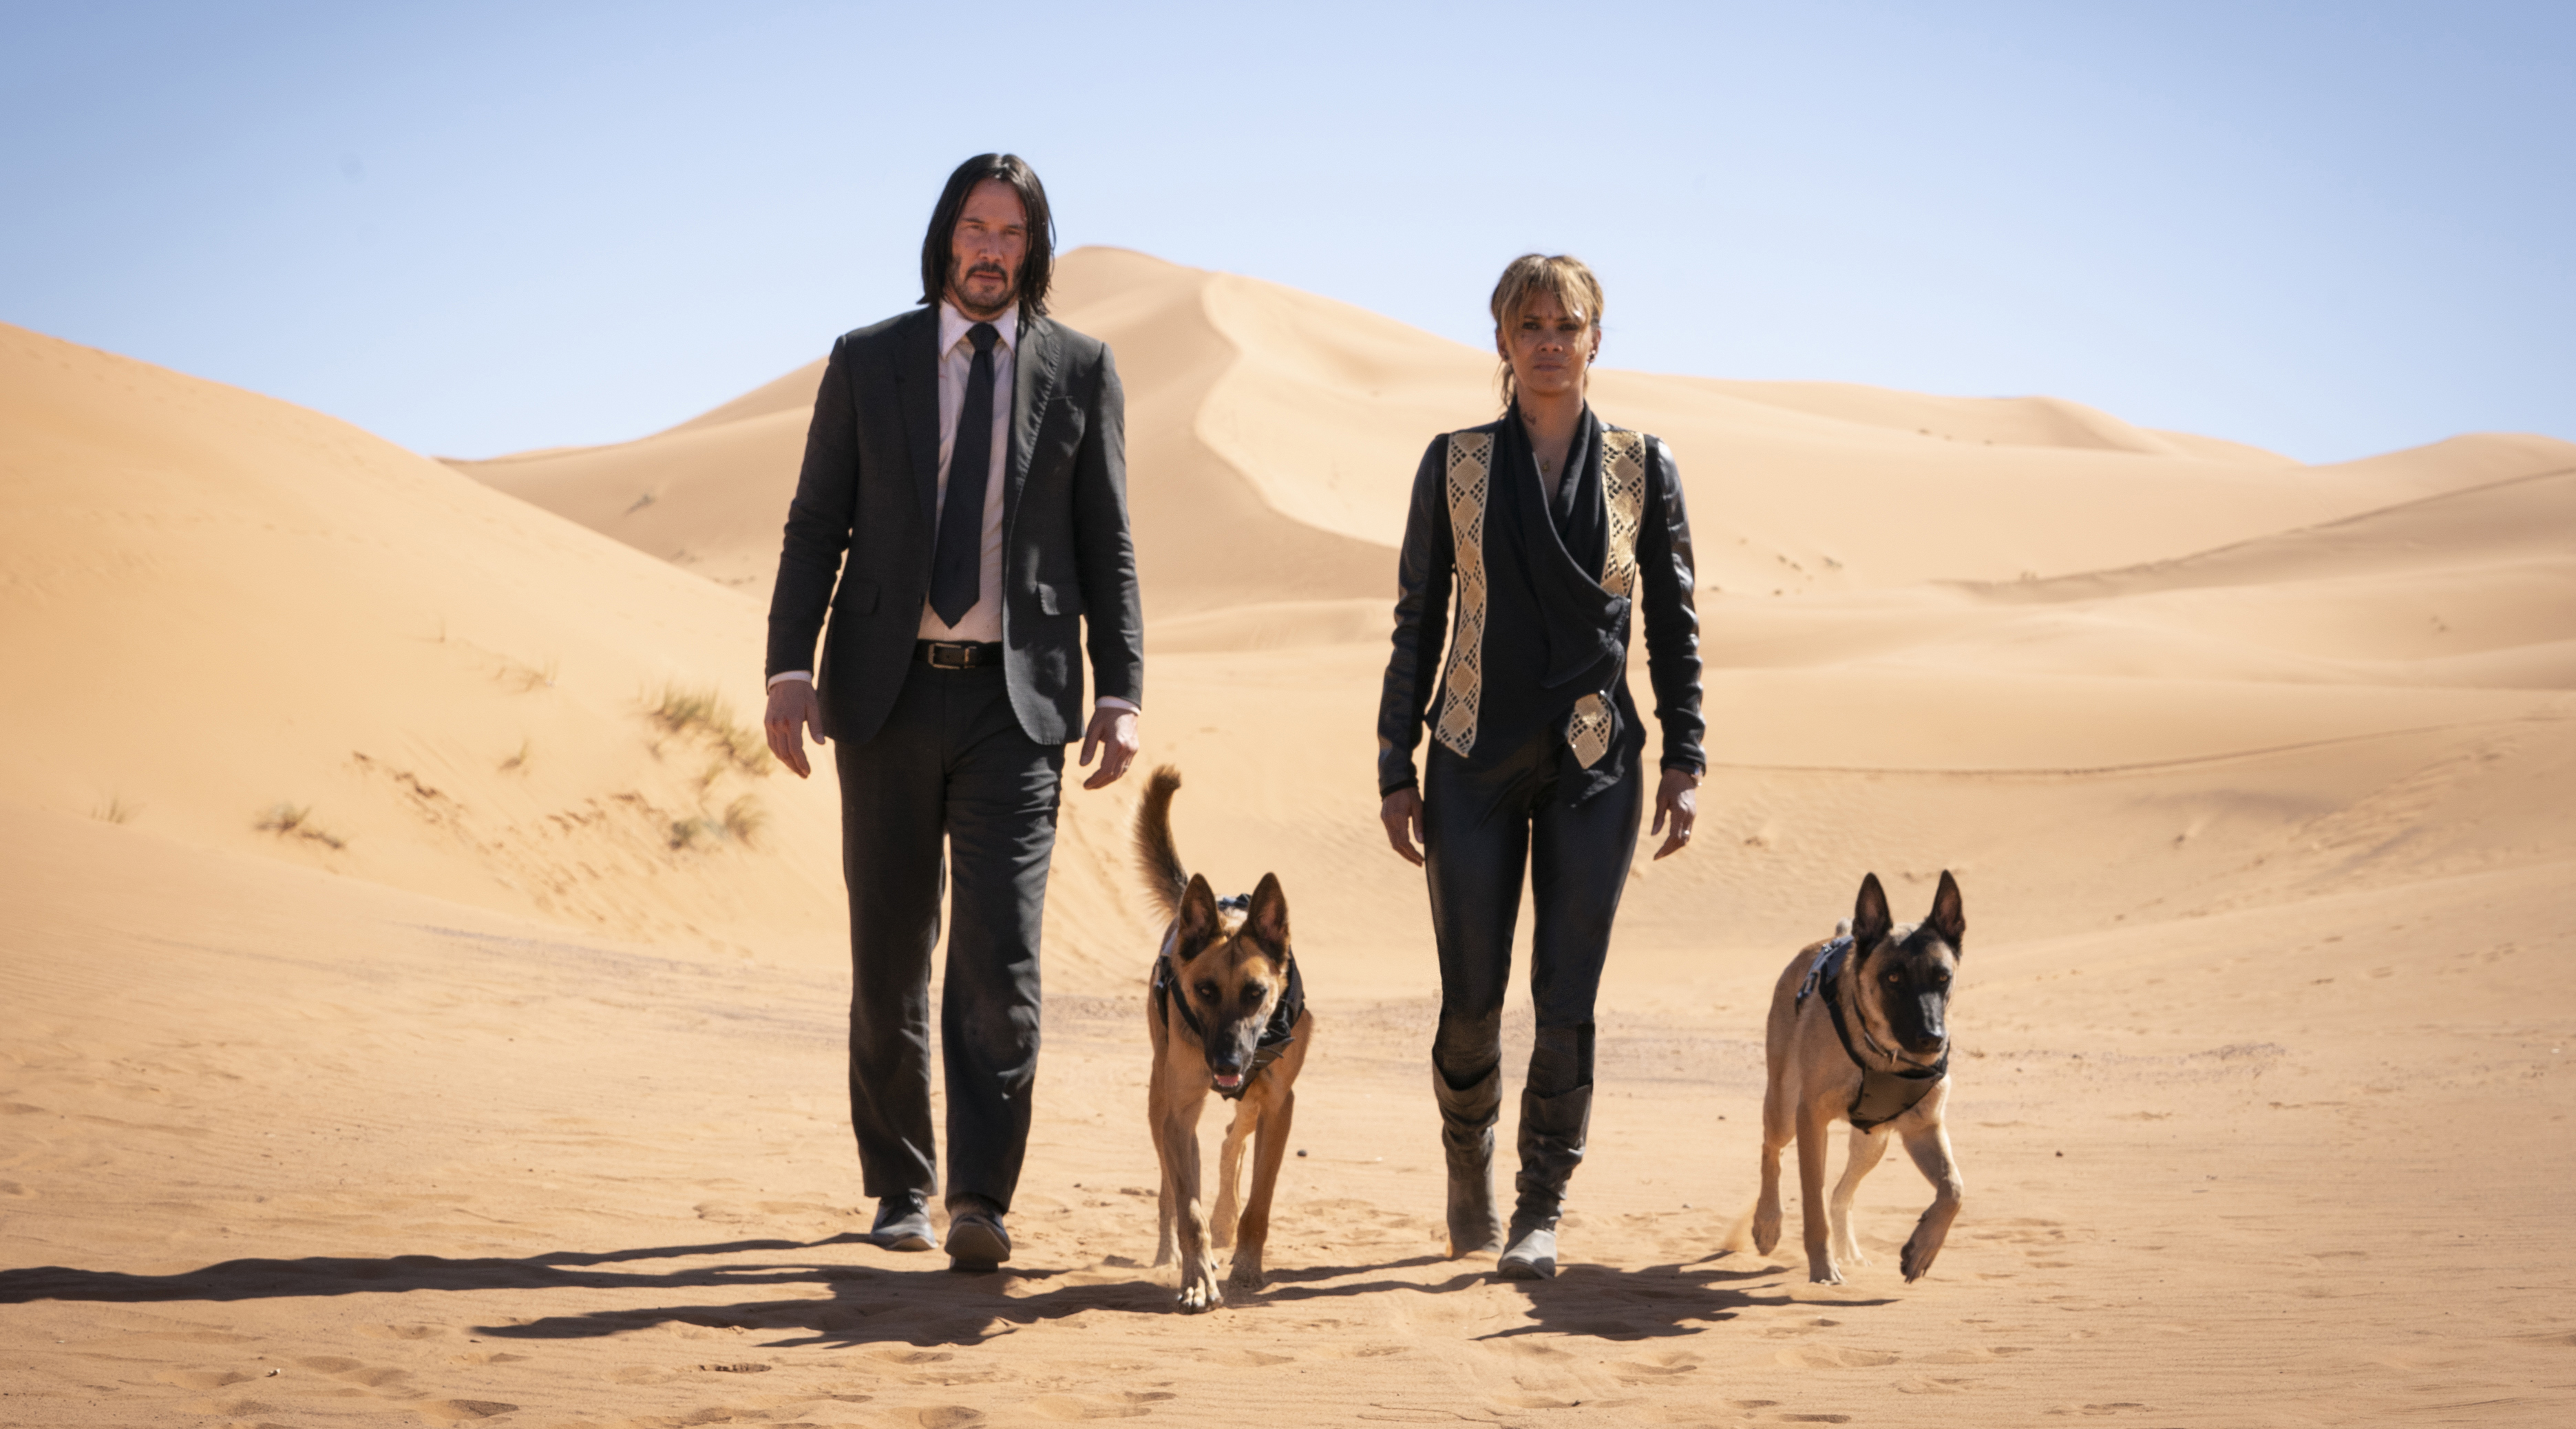 John Wick: Chapter 3': How It Trained Two Dogs Into Action Movie